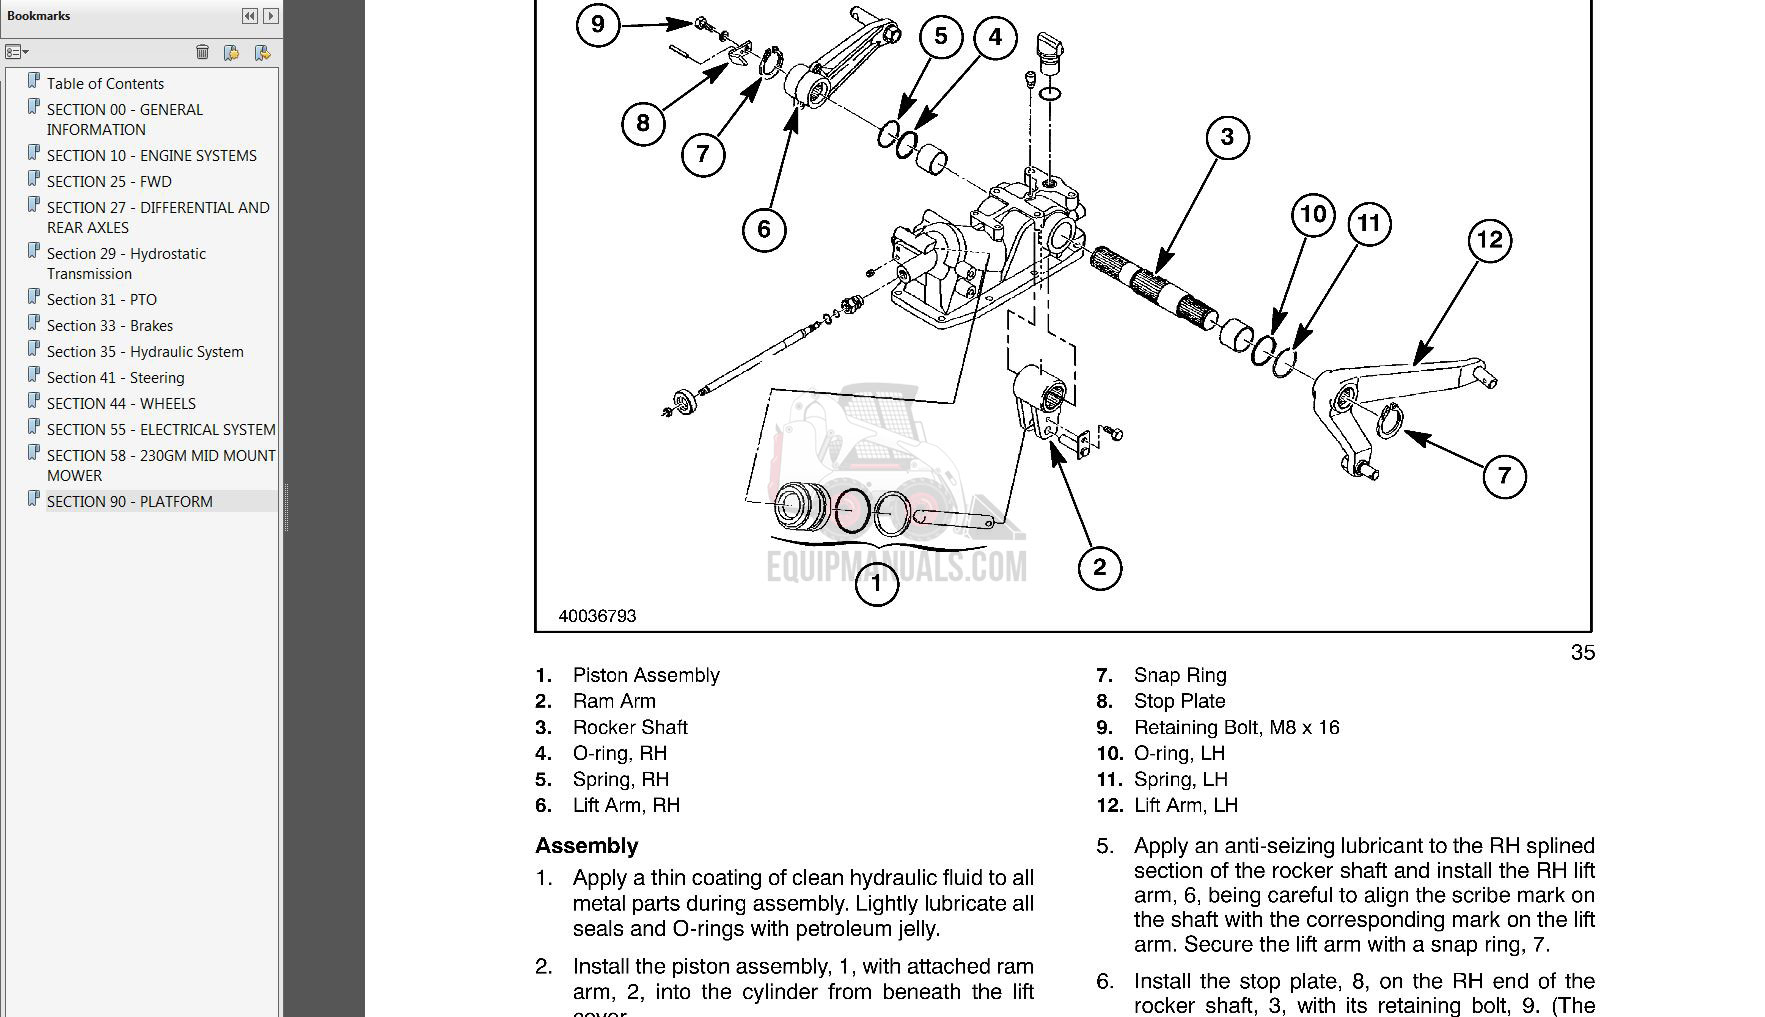 Case IH MXU, Maxxum Series Tractor Service Manual